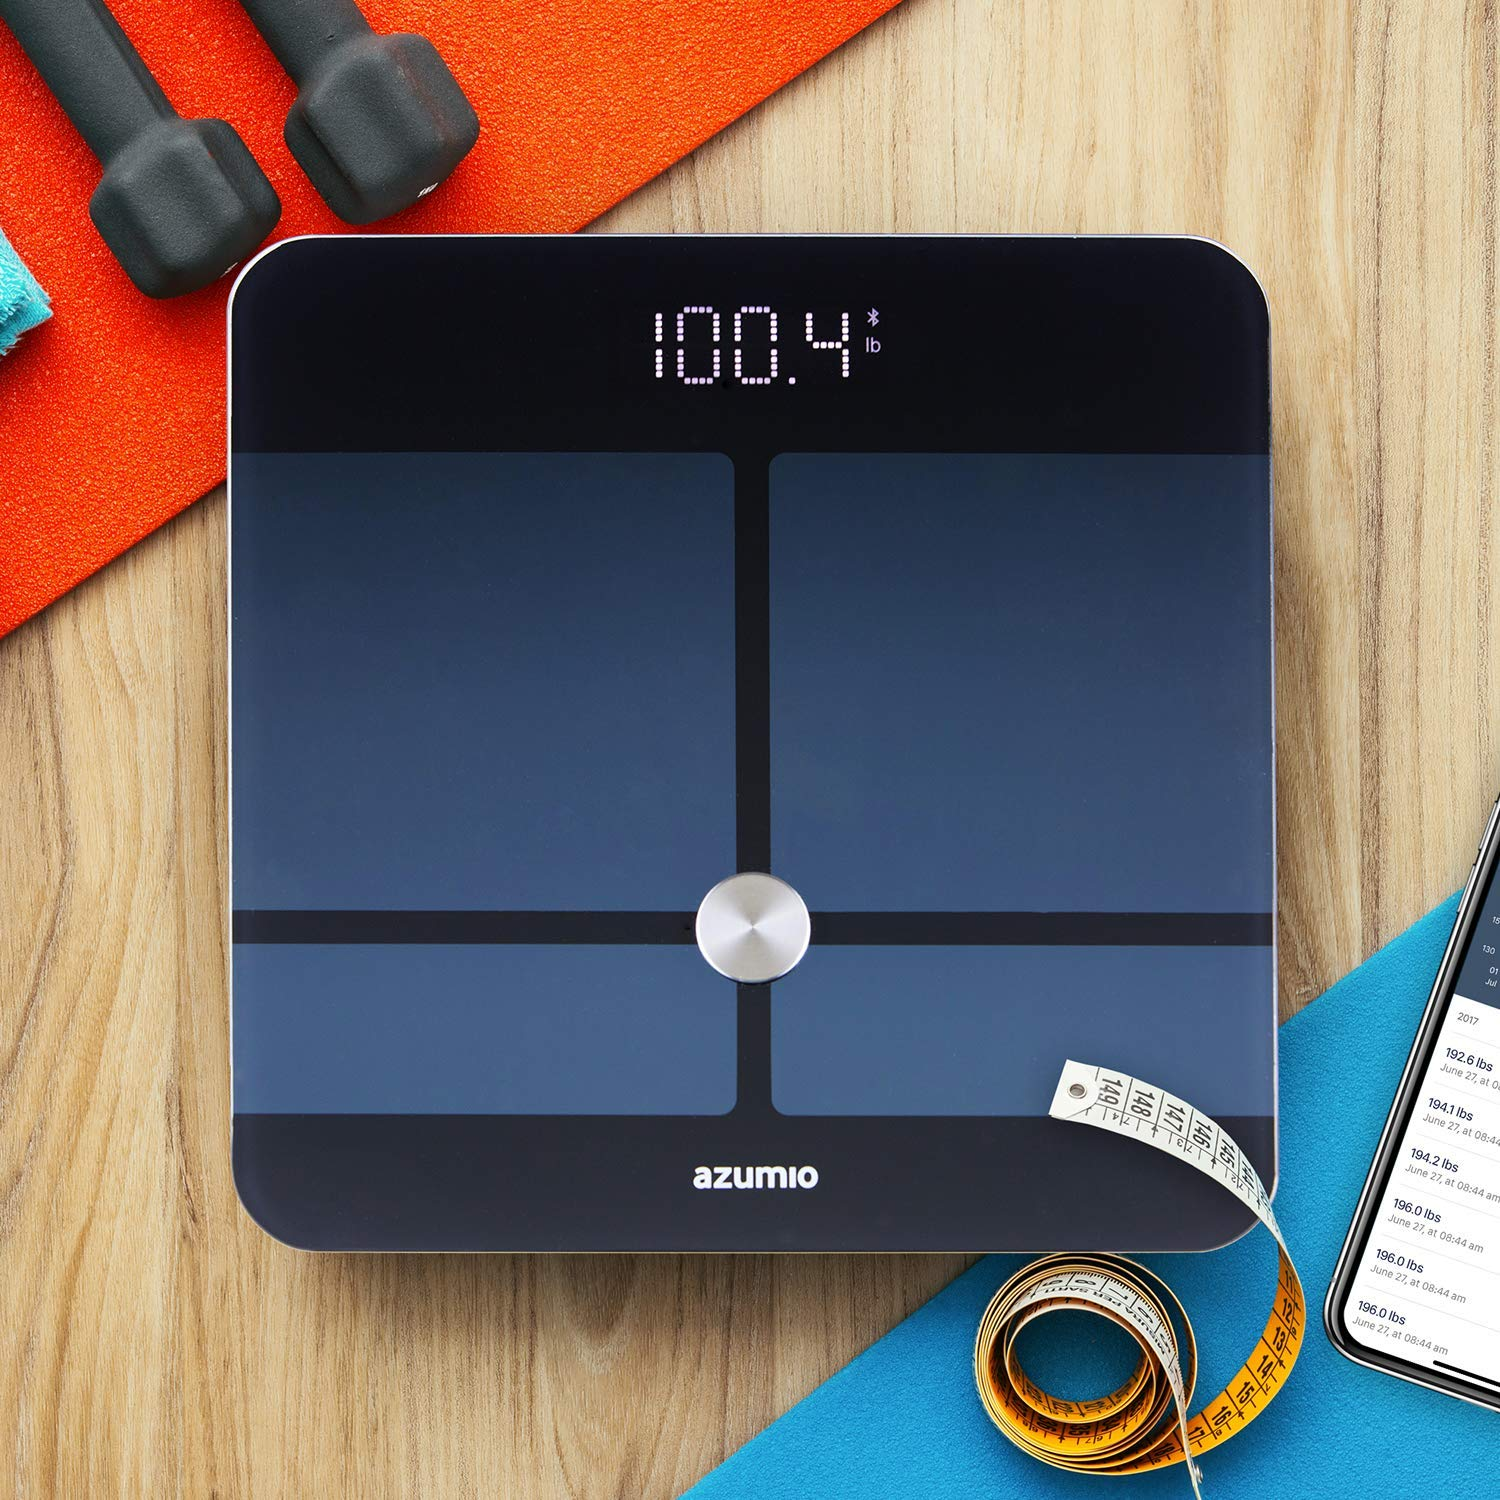 Azumio Bluetooth Digital Smart Scale for Body Weight | 6mm Tempered Glass LED Display Measures Body Fat, Visceral, BMI, BMR, Muscle Mass, Bone Mass Water Weight in KG or LB | iOS & Android Compatible by Azumio (Image #7)